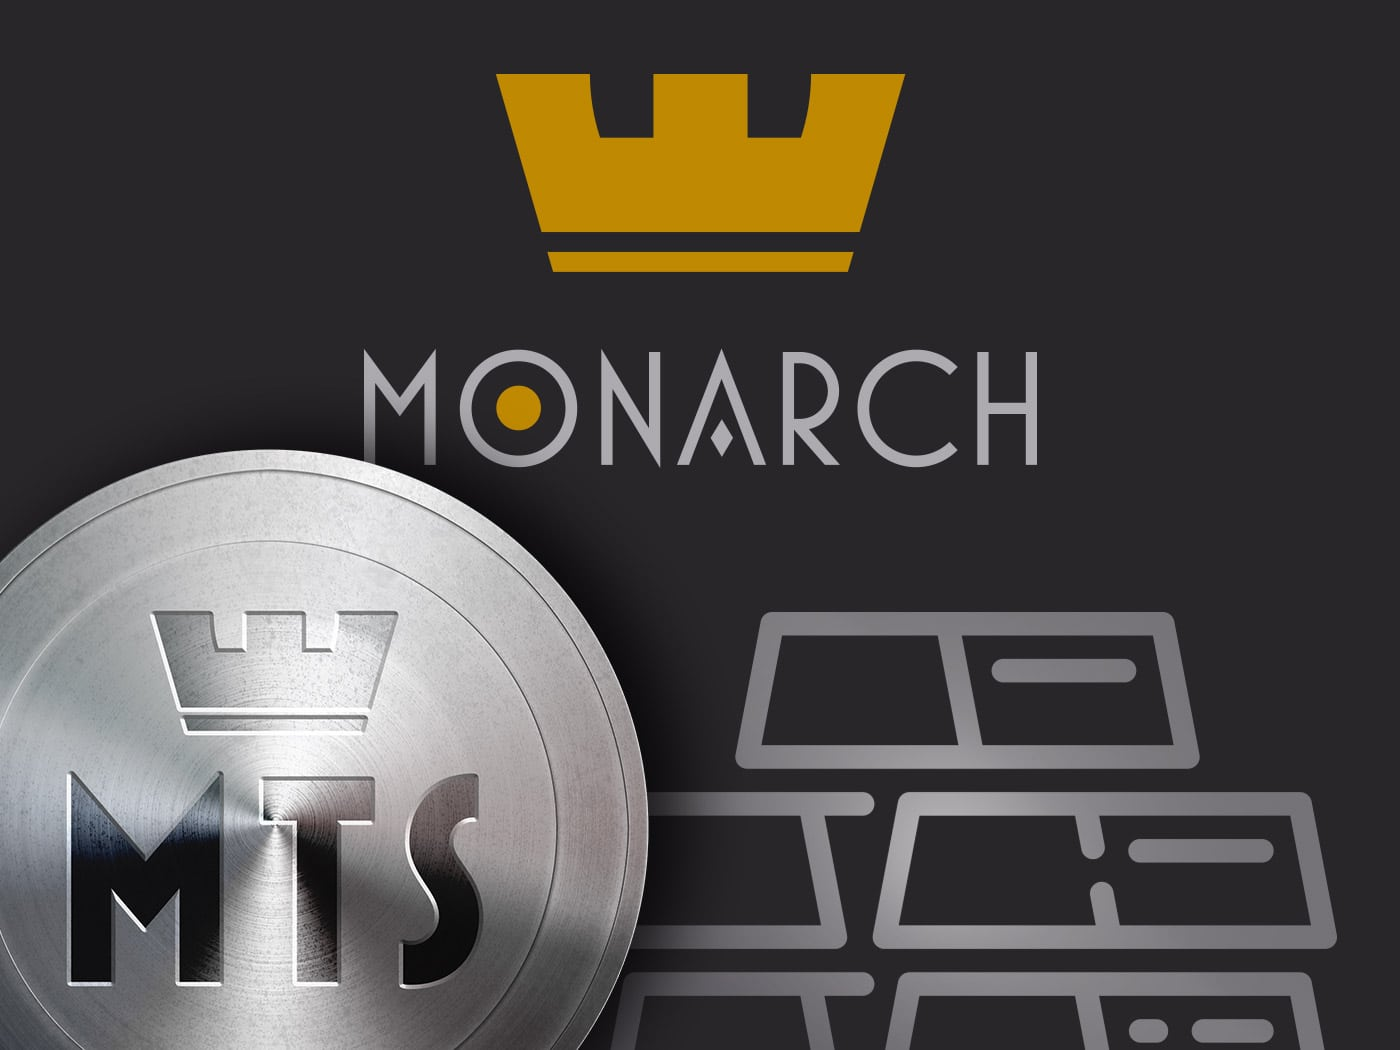 Founded By Blockchain Superstars Monarch Project Features